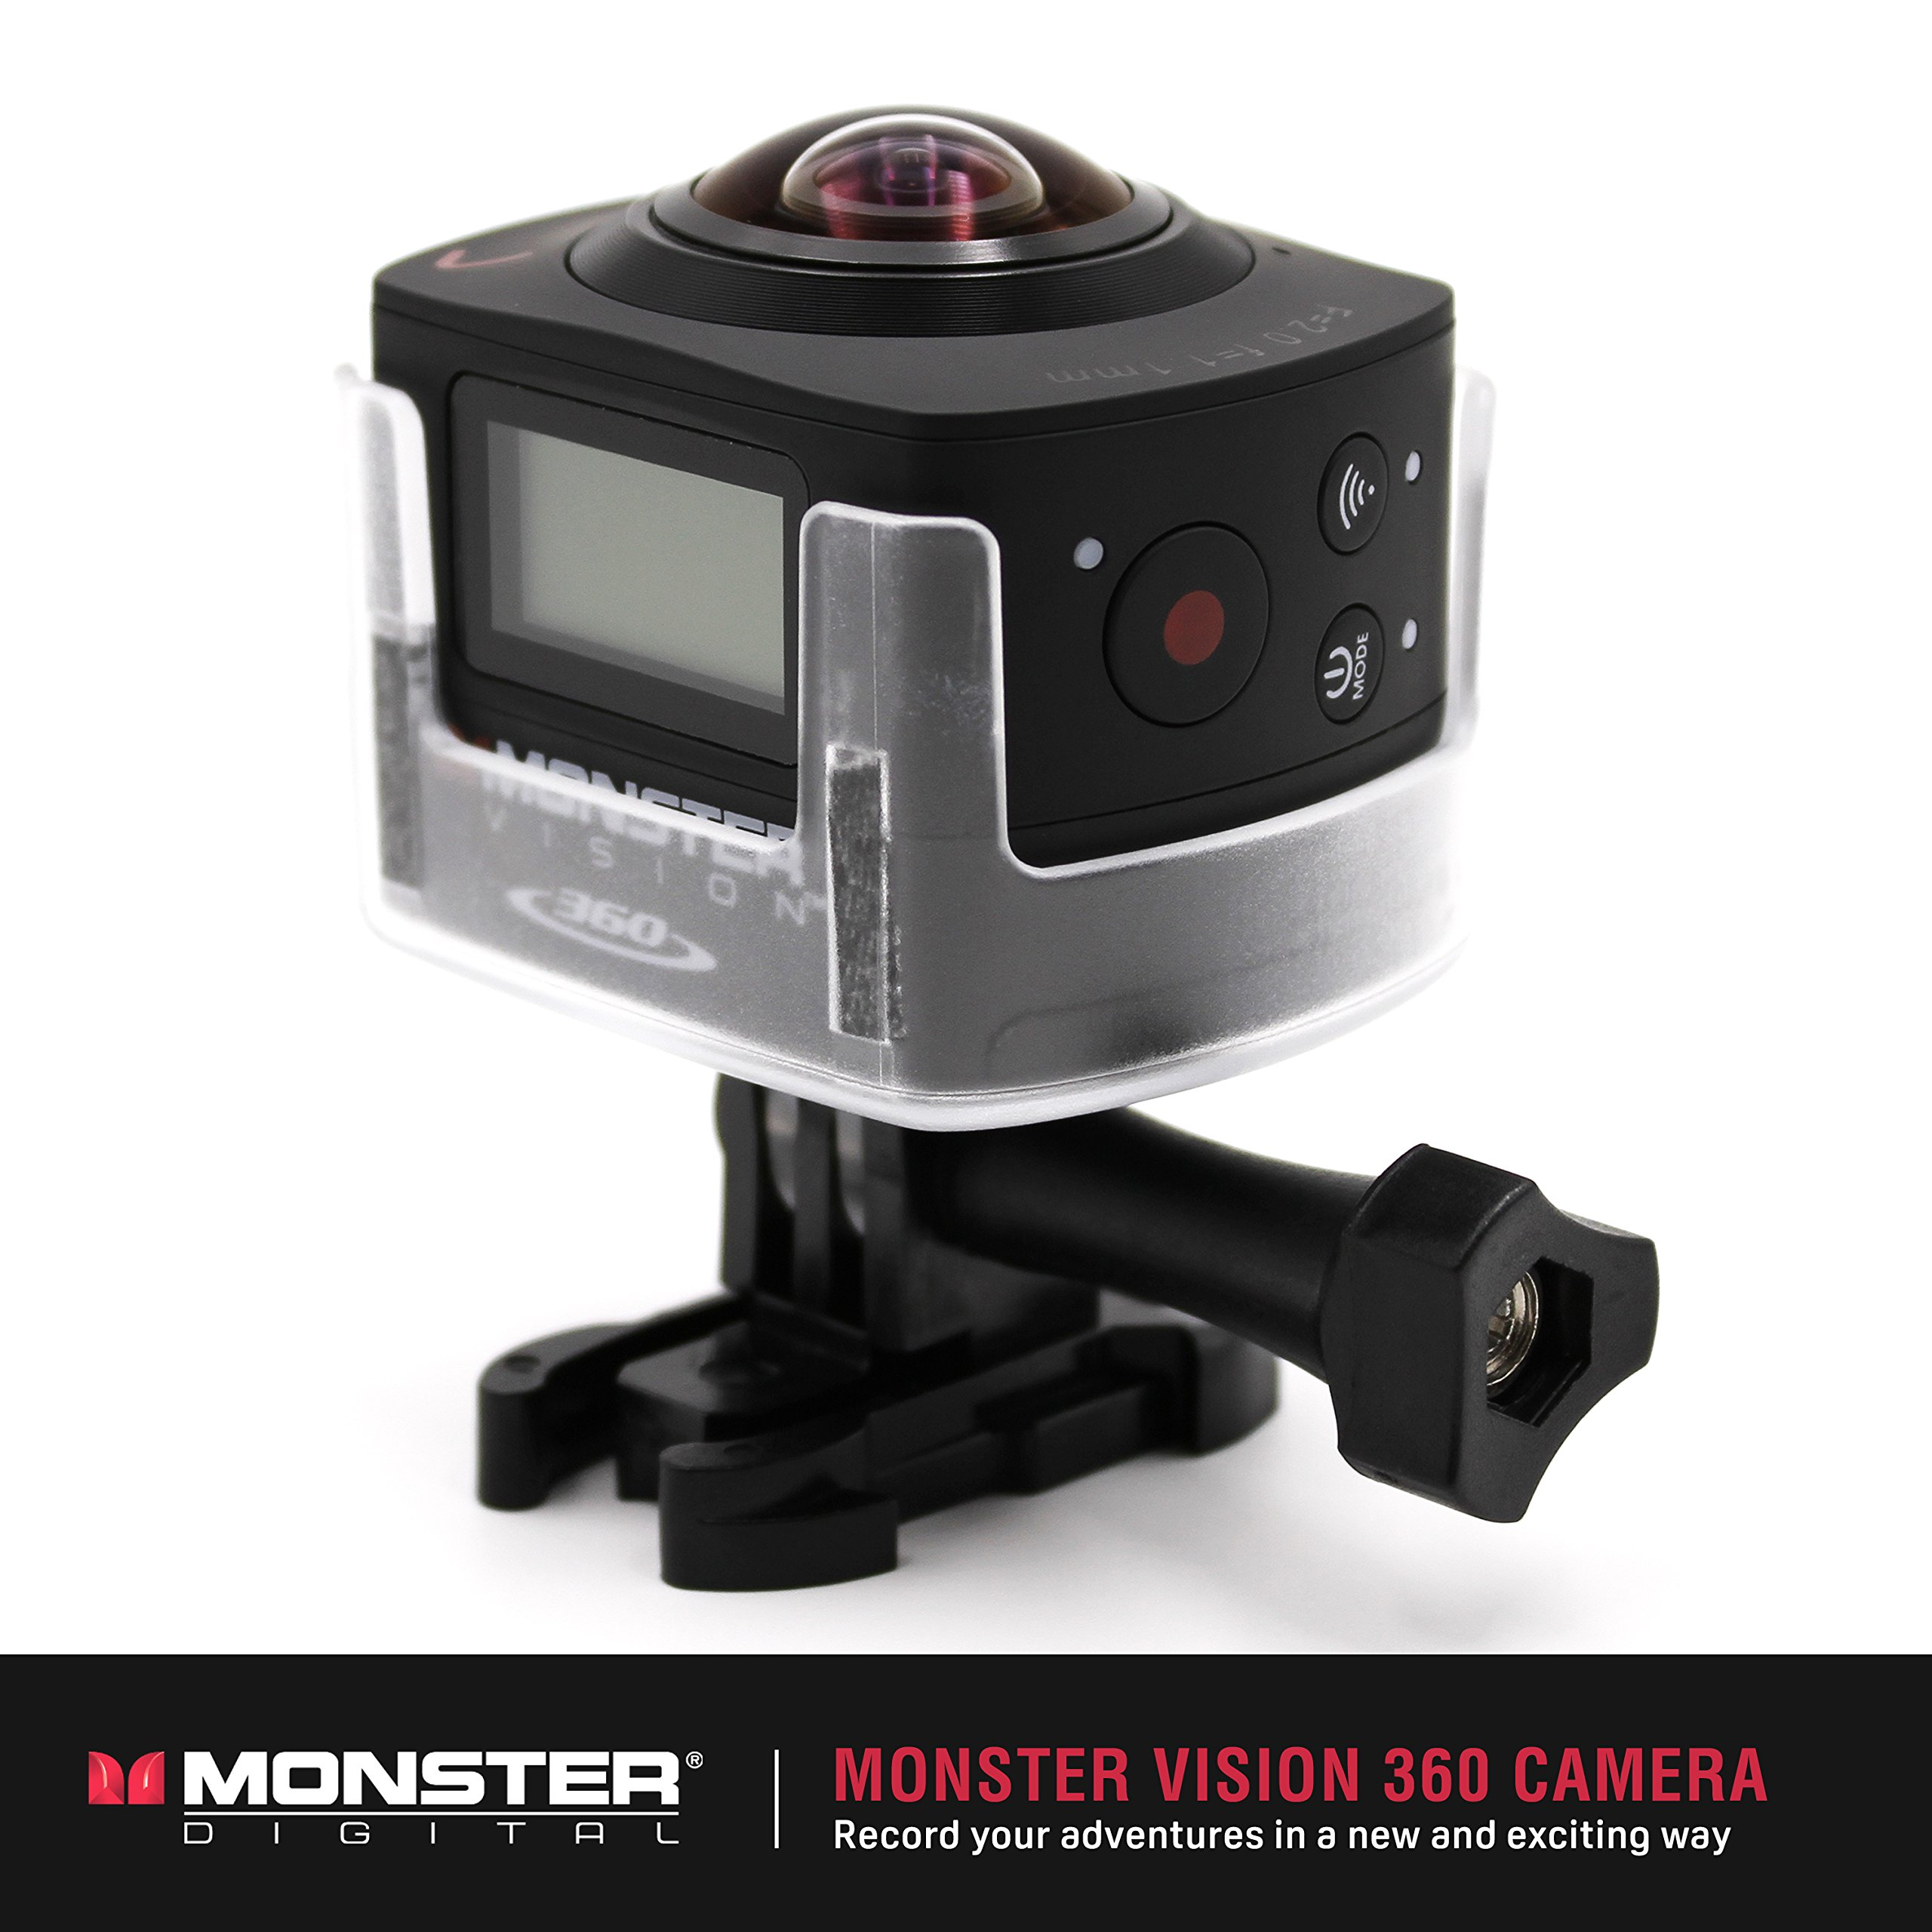 Monster Vision 360 Camera 1080p 60fps Action Camera, 16GB MicroSD included, Ultra Wide Angle, WiFi Enabled [CAMVI-0360-A] by Monster Digital